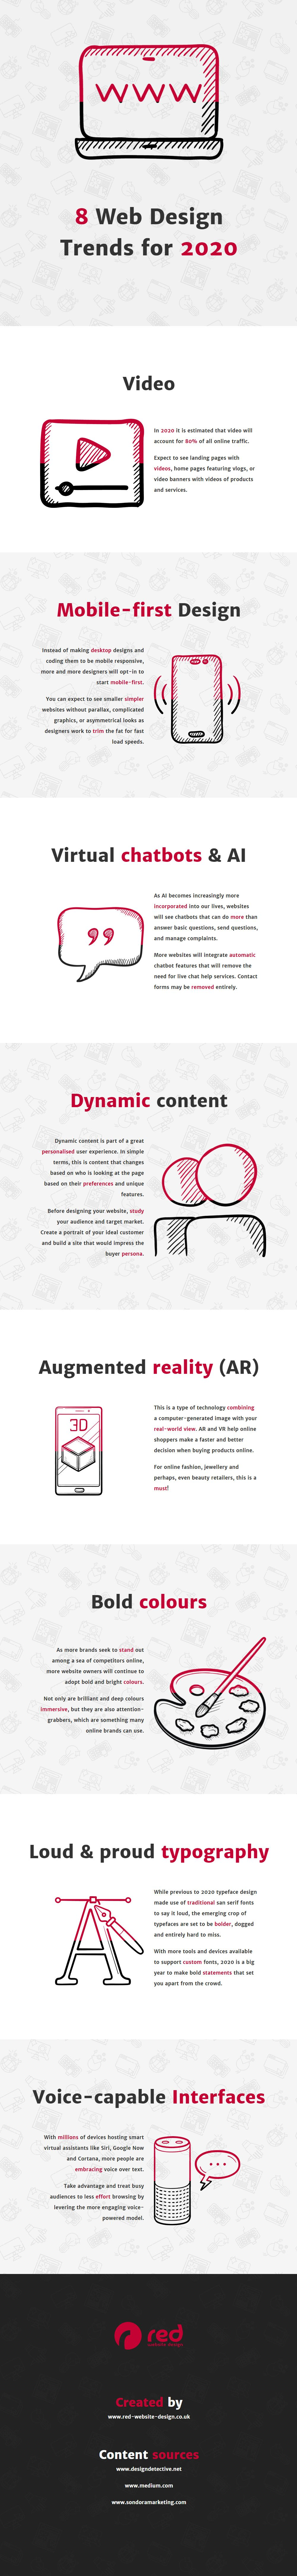 8 Web Design Trends For A Stunning Business Website In 2020 Infographic Augmented Reality Ar Bold Colou Web Design Trends Web Development Design Web Design